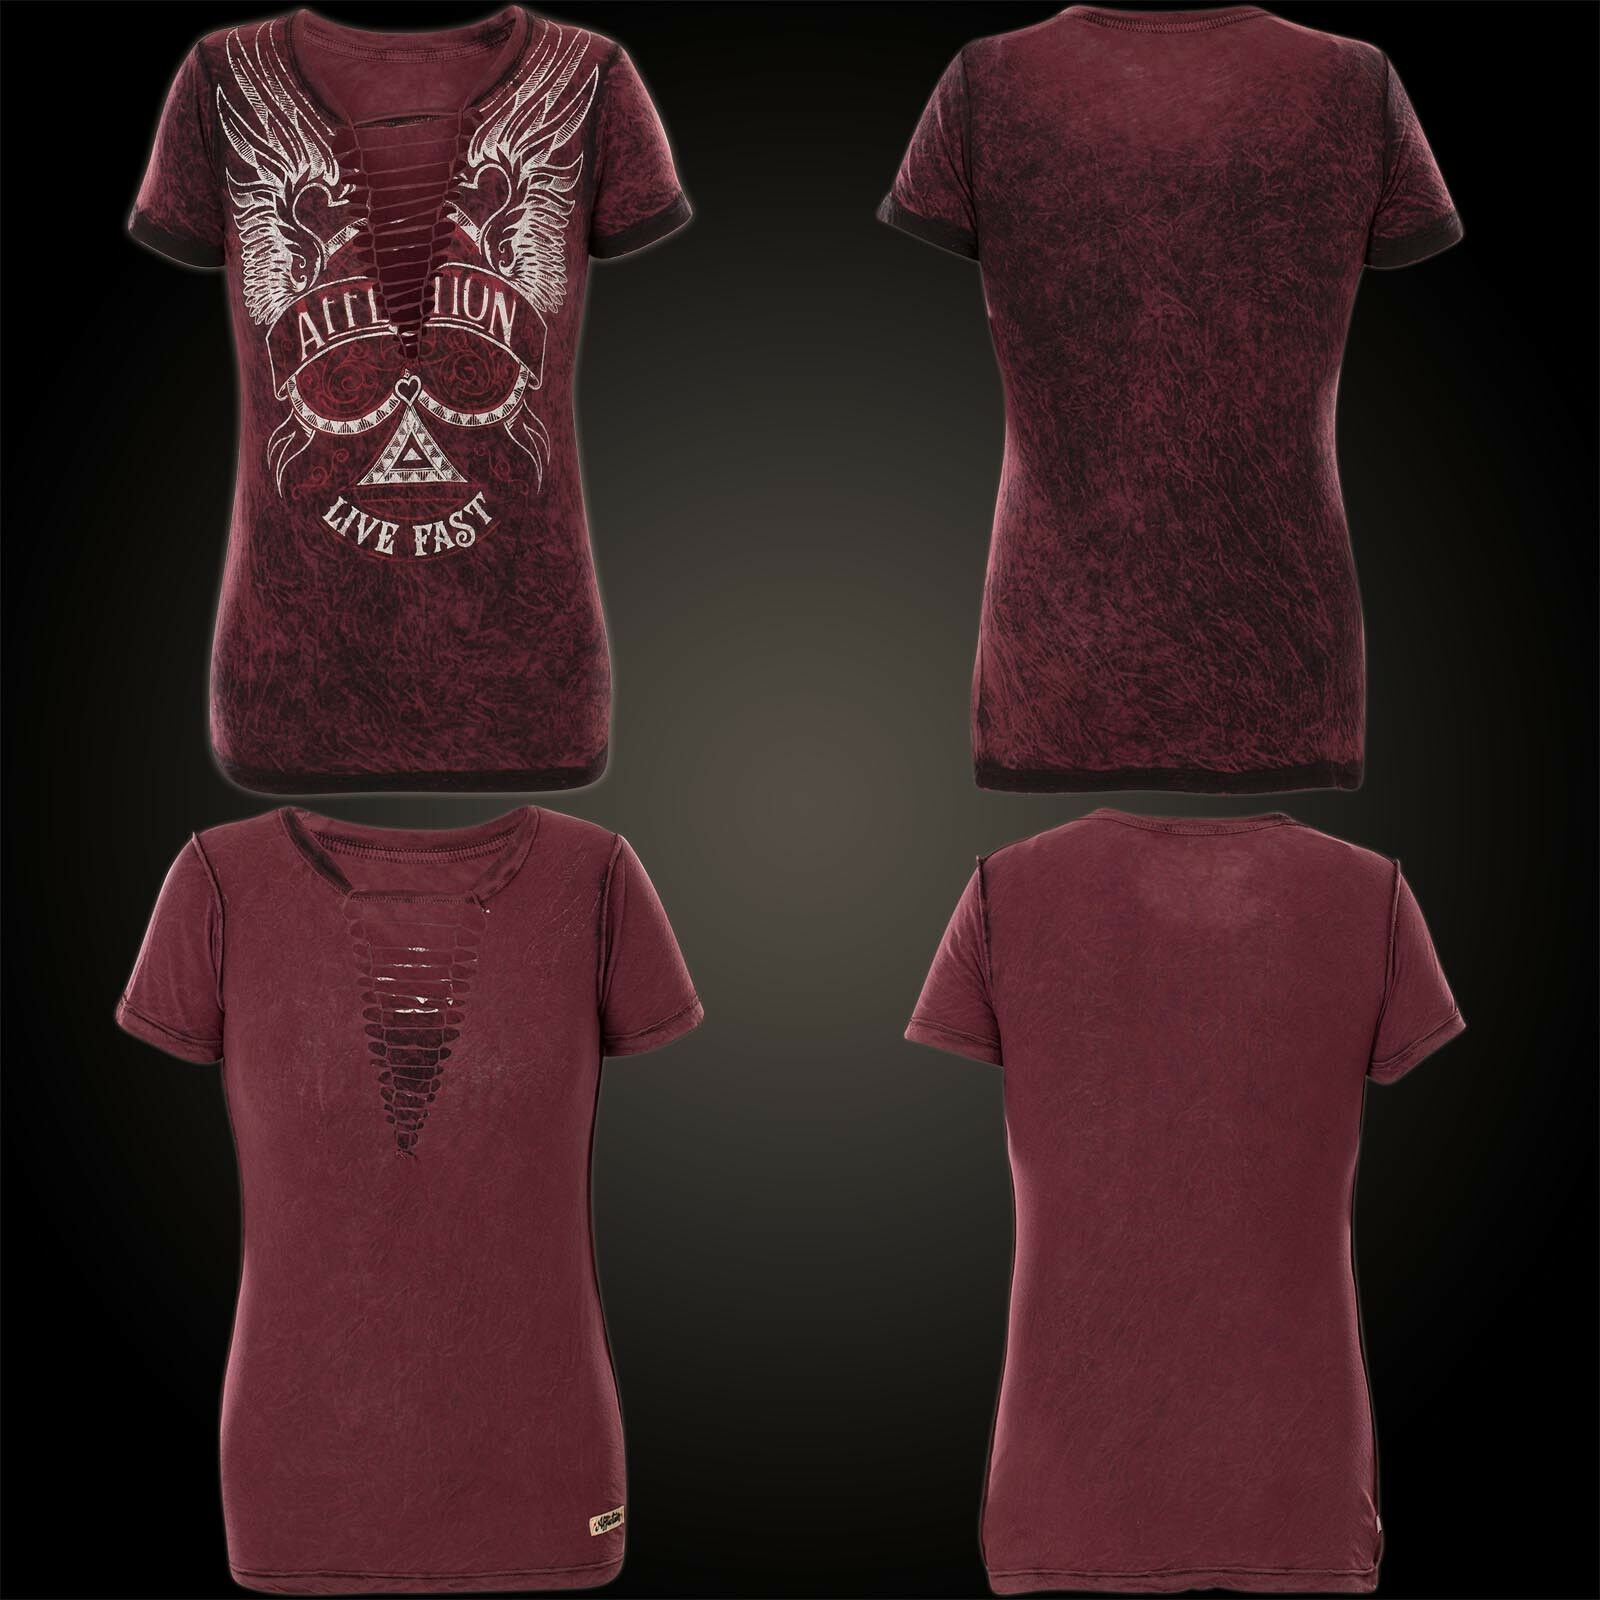 AFFLICTION Damen T-Shirt Starlett Rev. Weinrot